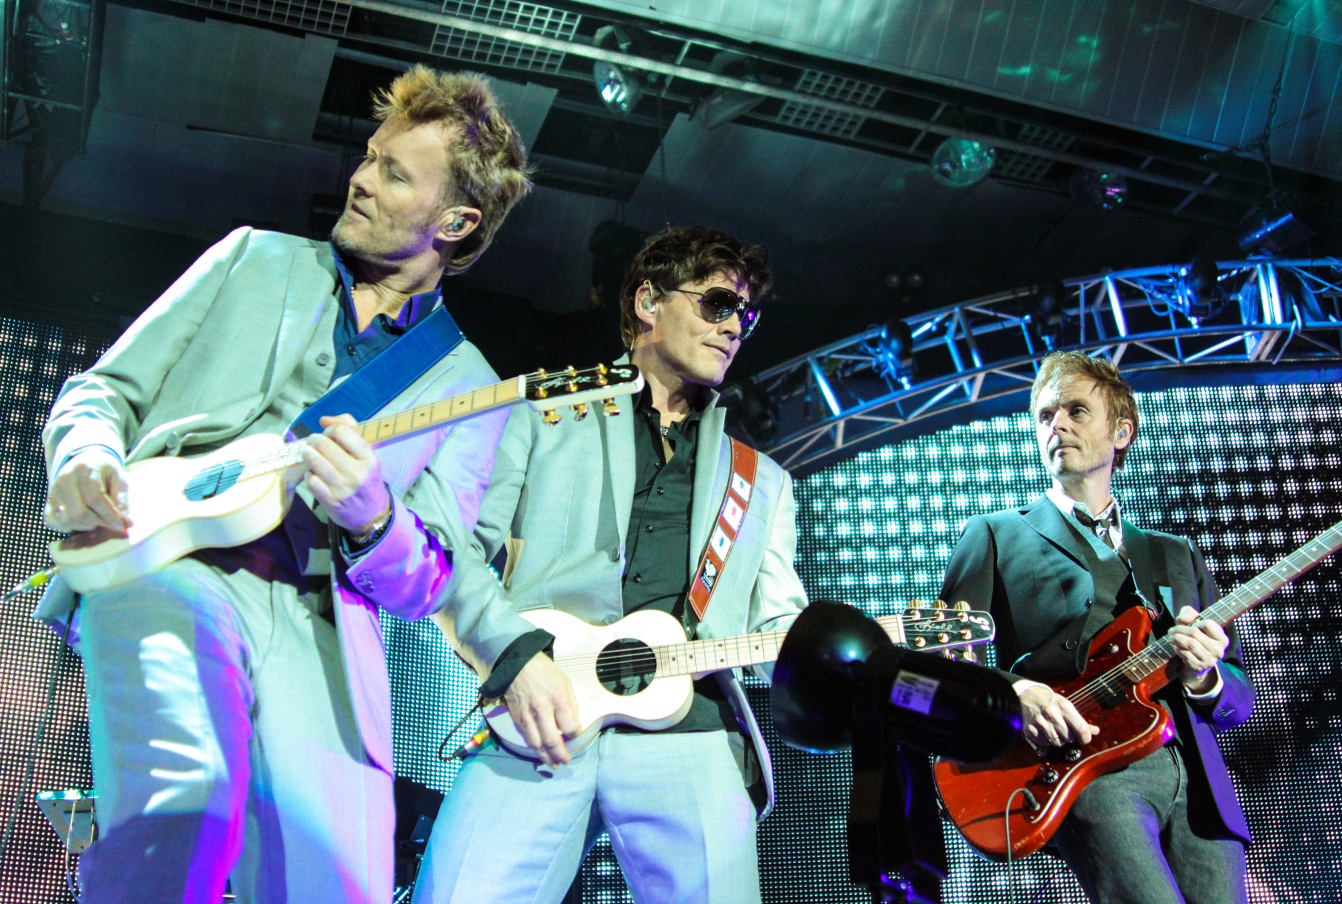 A-ha The Norwegian Band (And Electric Car Activists), Playing At A Concert